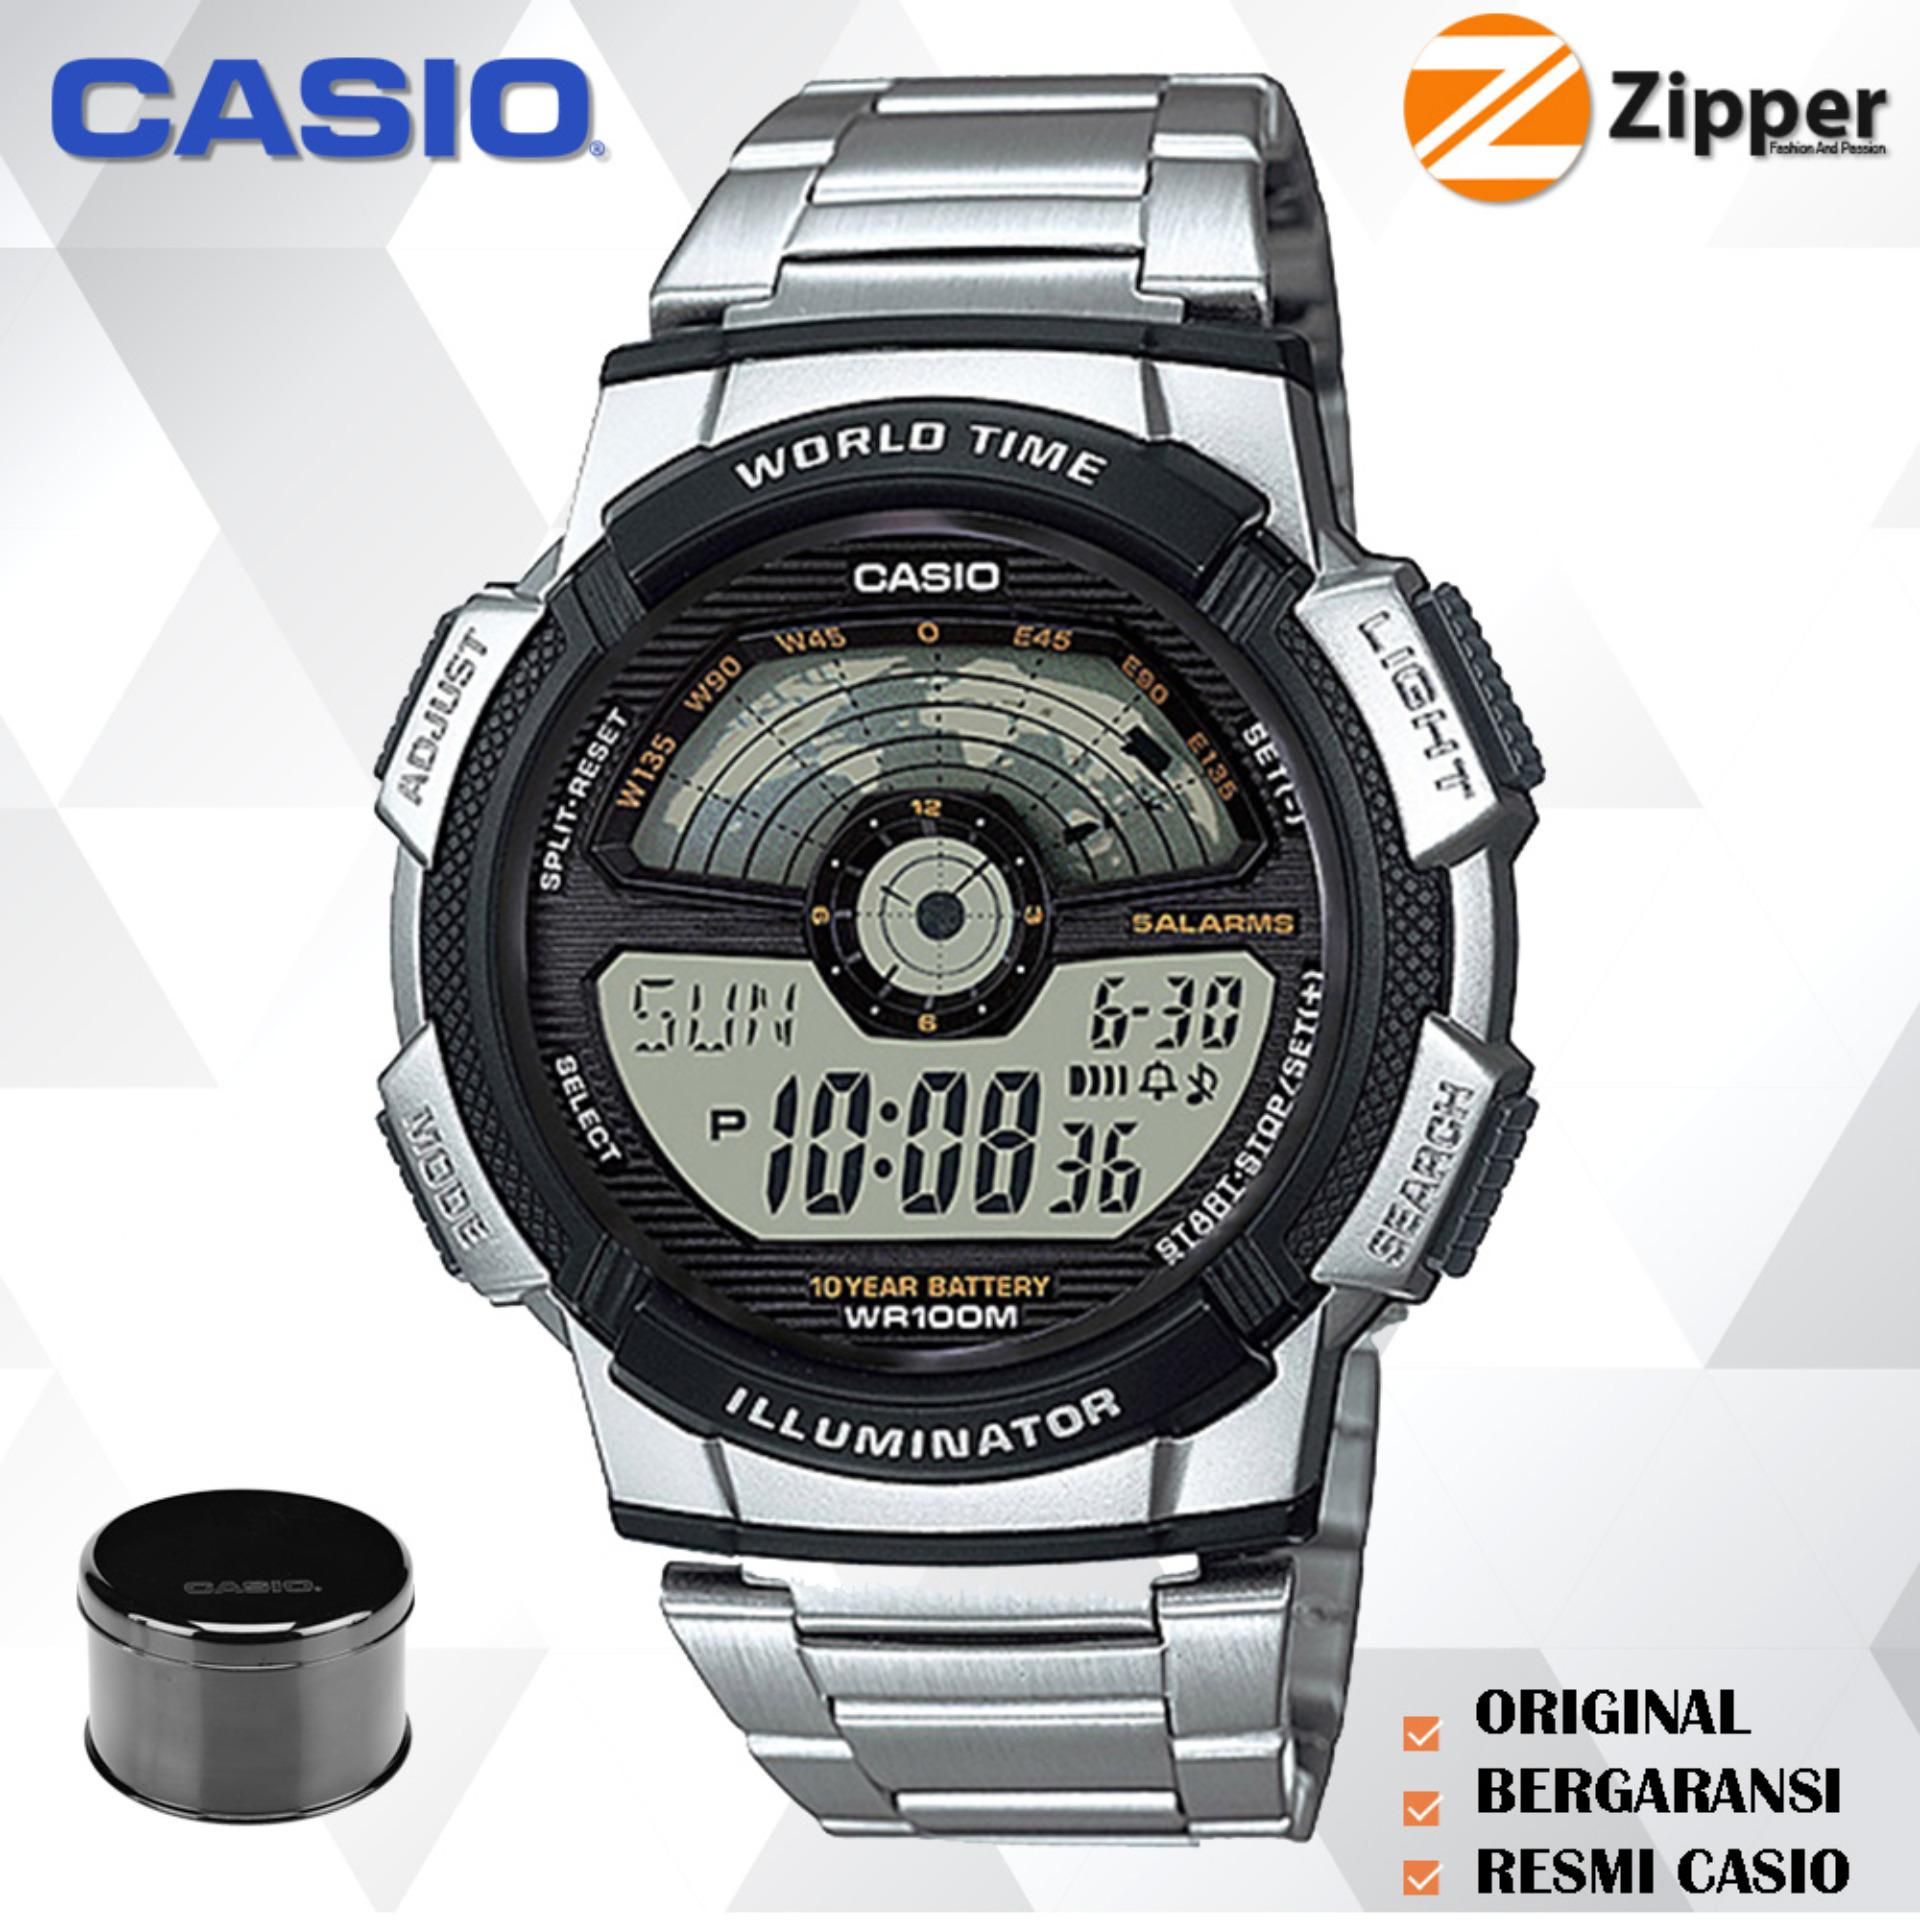 Casio Illuminator Jam Tangan Digital AE-1100WD-1AVDF Youth Series - Tali Stainless Steel